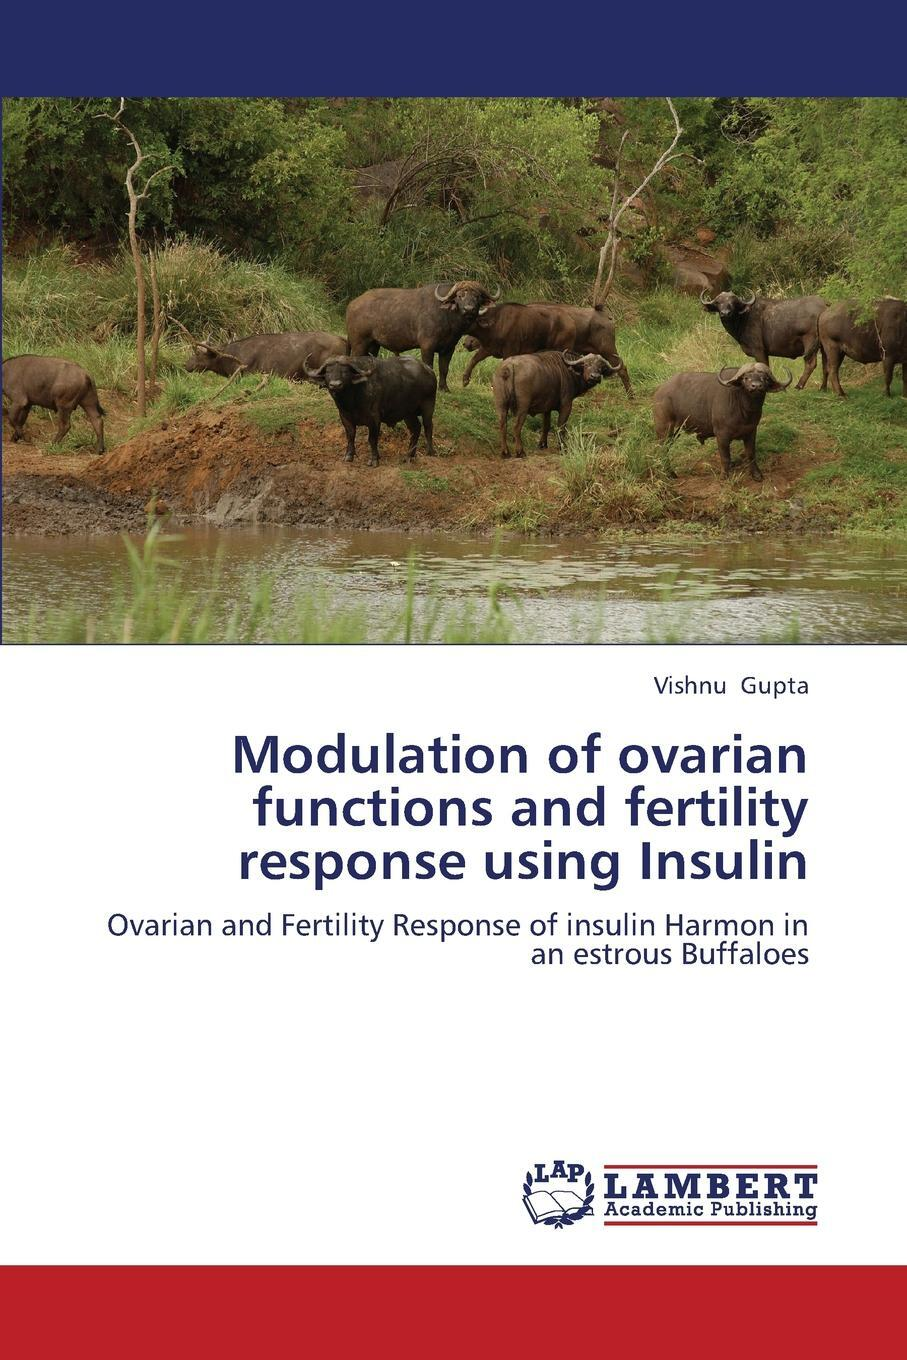 Modulation of Ovarian Functions and Fertility Response Using Insulin